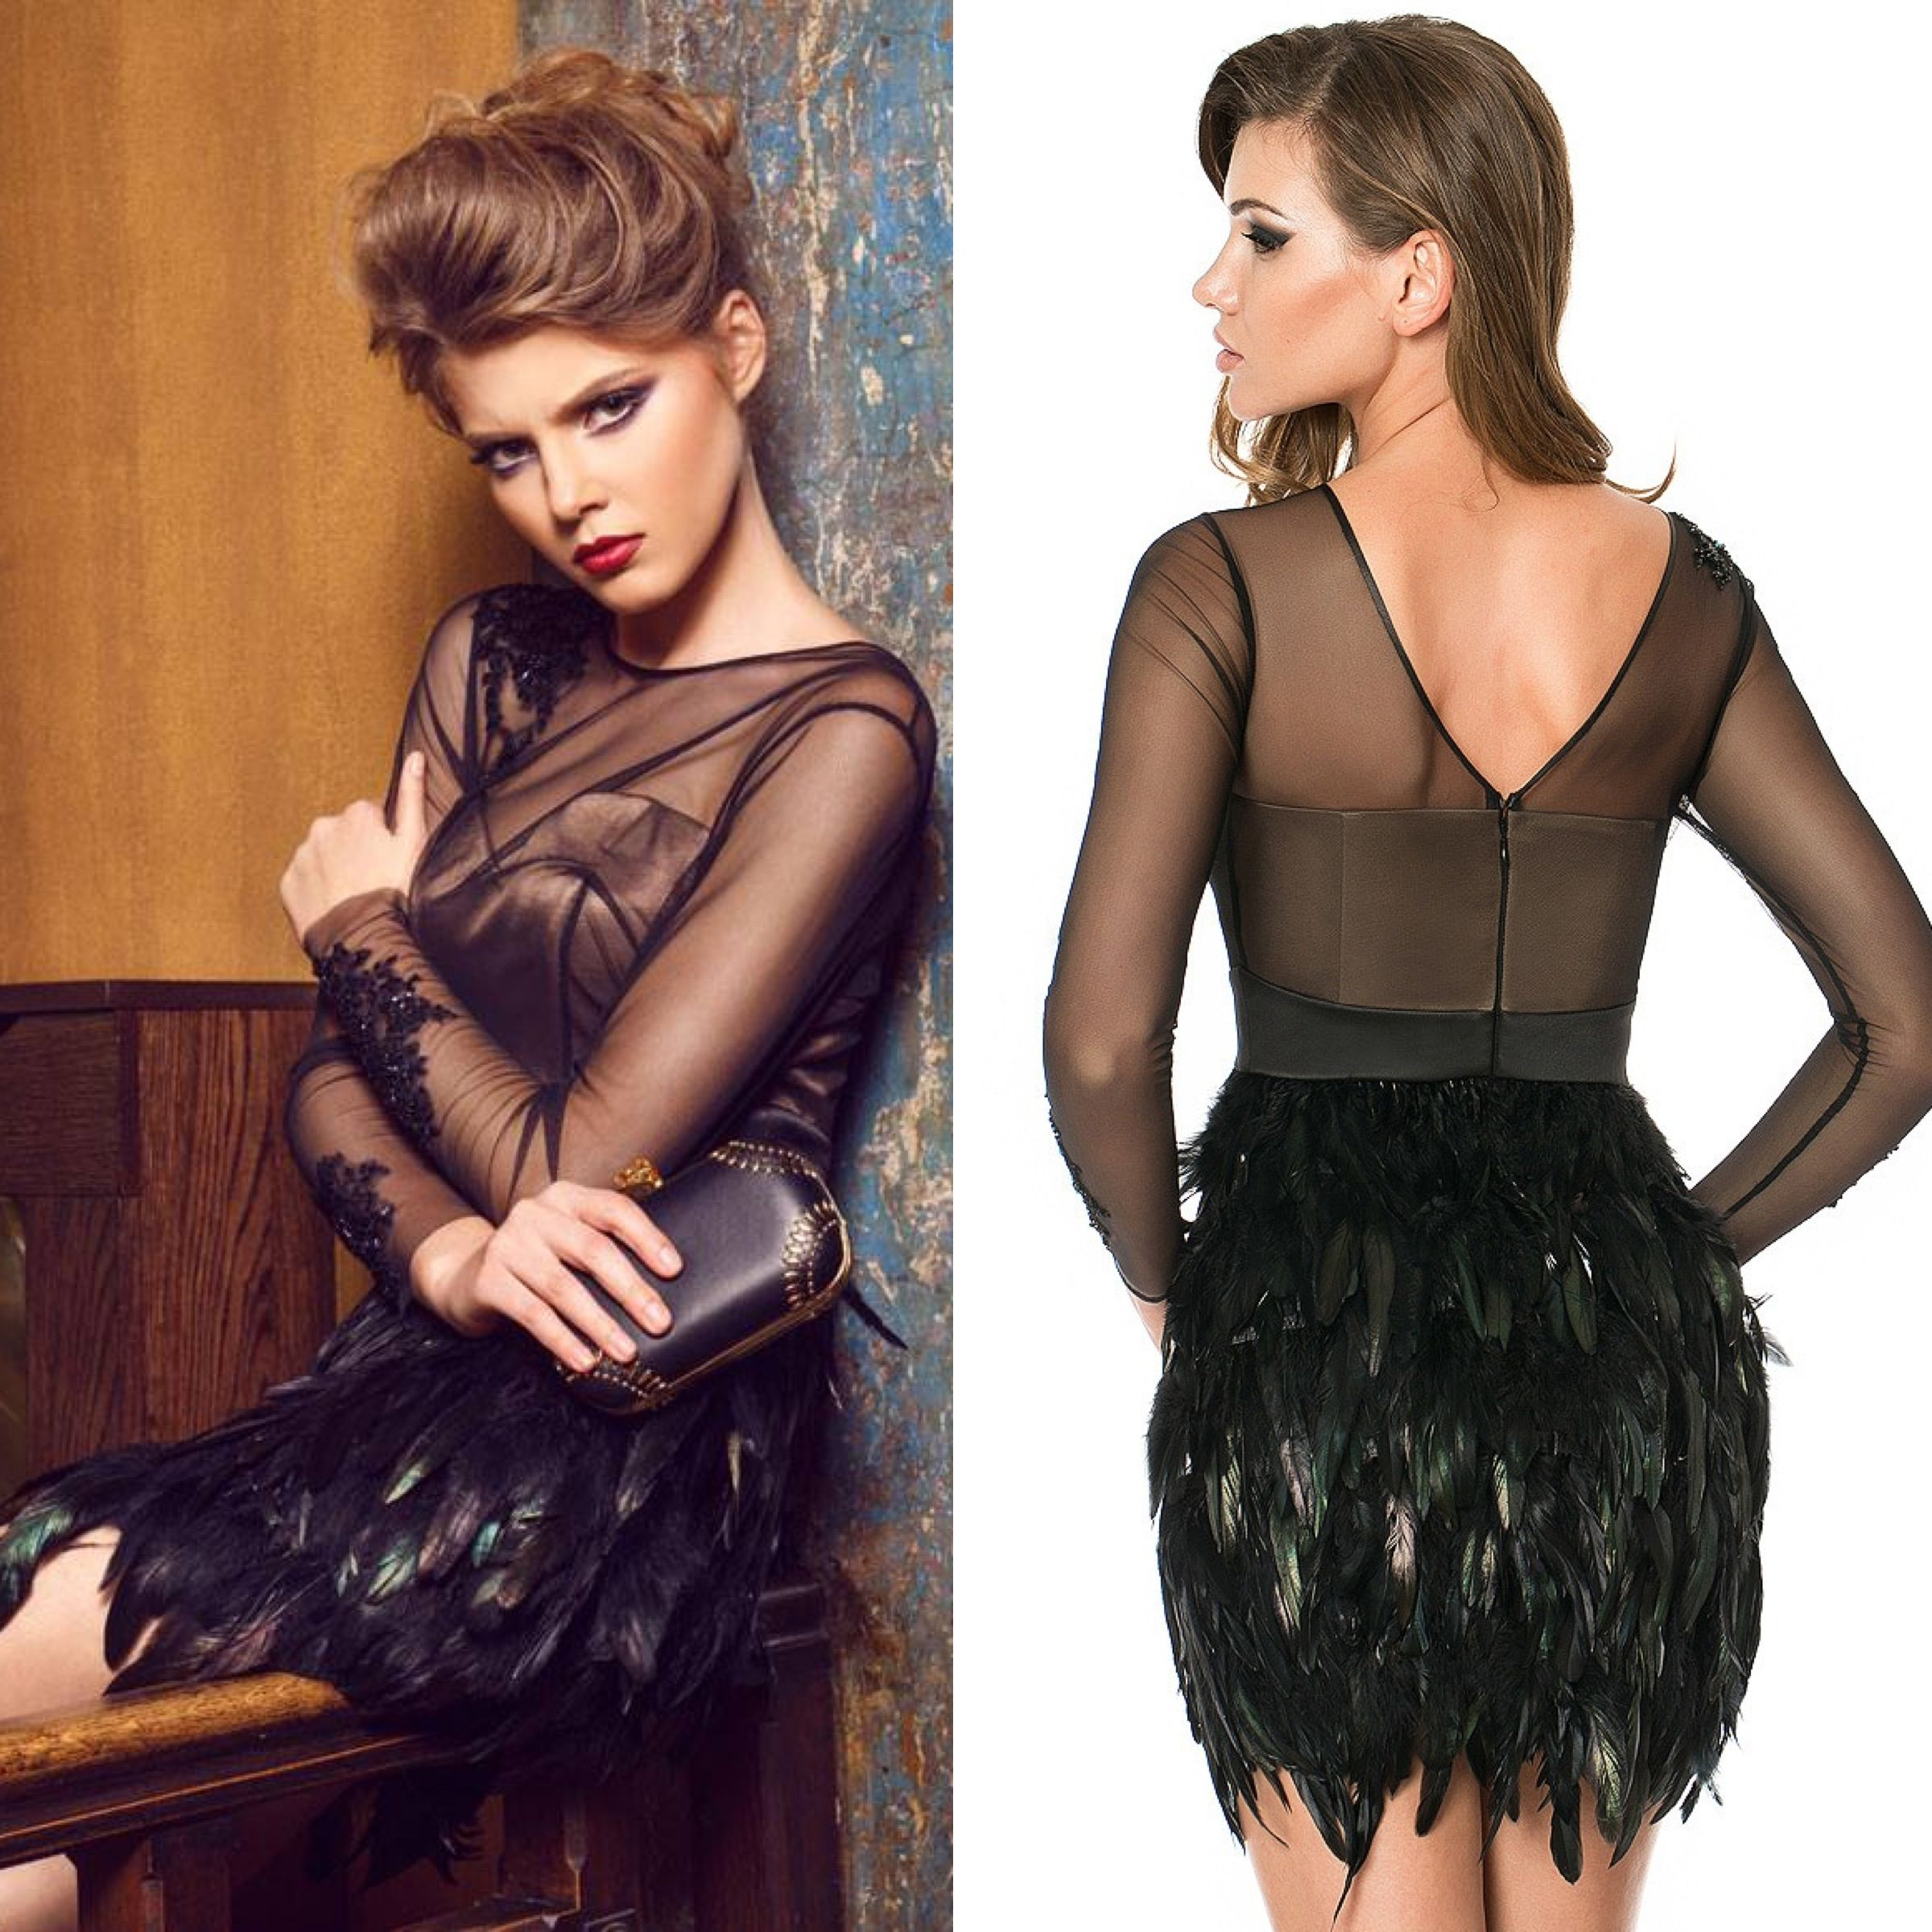 Powerful feathered cocktail dress! Capture the spotlight in this elegant and sophisticated CRISTALLINI cocktail dress, the perfect choice for your upcoming special event! This formal cocktail dress has an amazing style with a sheer overlay bodice and a stunning skirt with feathers, creating a perfect party look. You can shop this dress from our online store, the shipping is very fast and it's free worldwide: http://shop.cristallini.com/cristallini-ska160